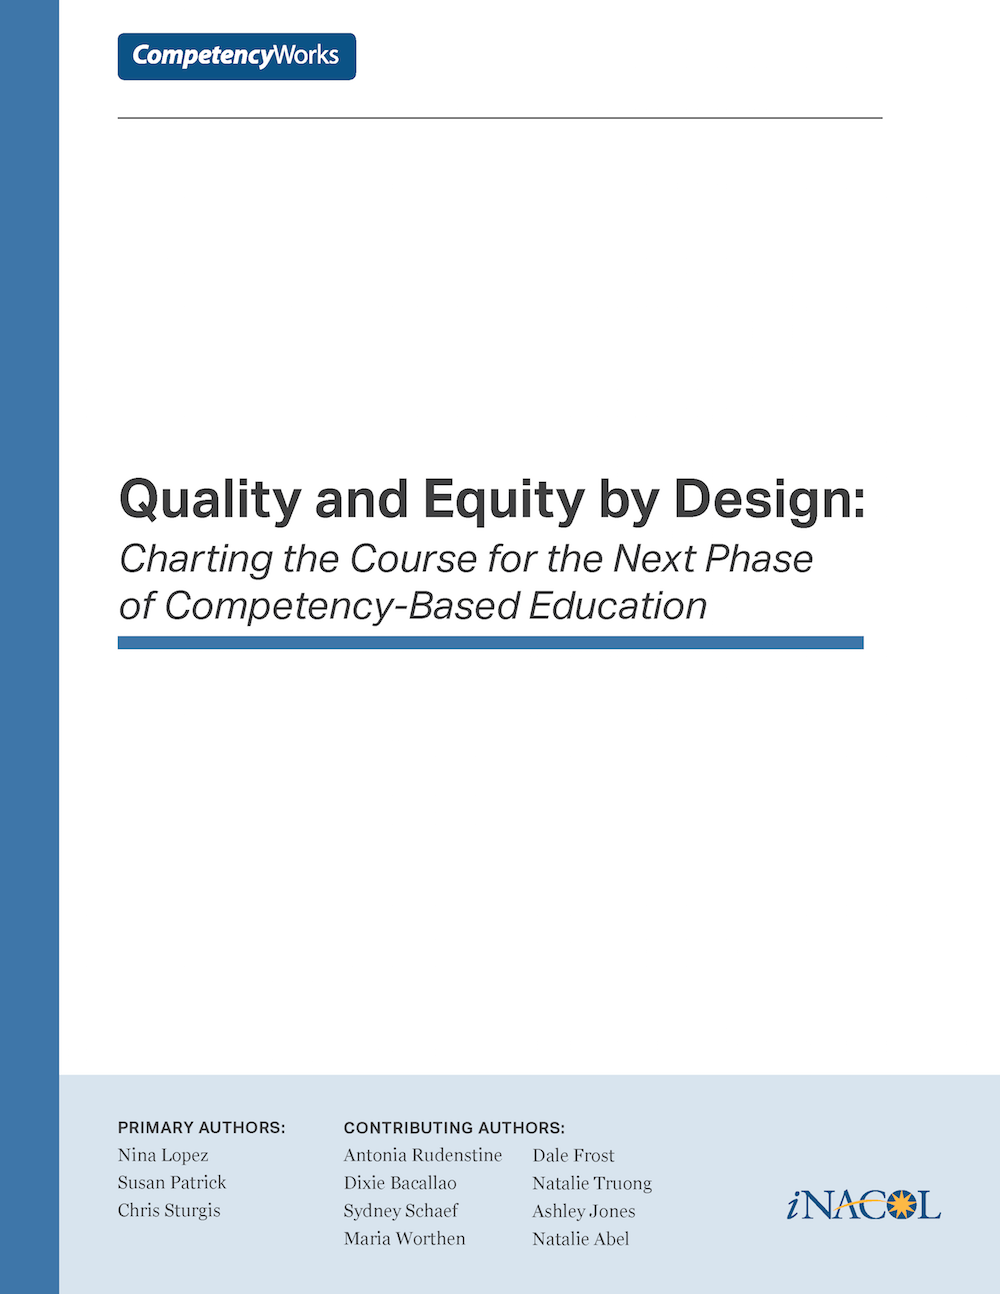 Quality and Equity Final